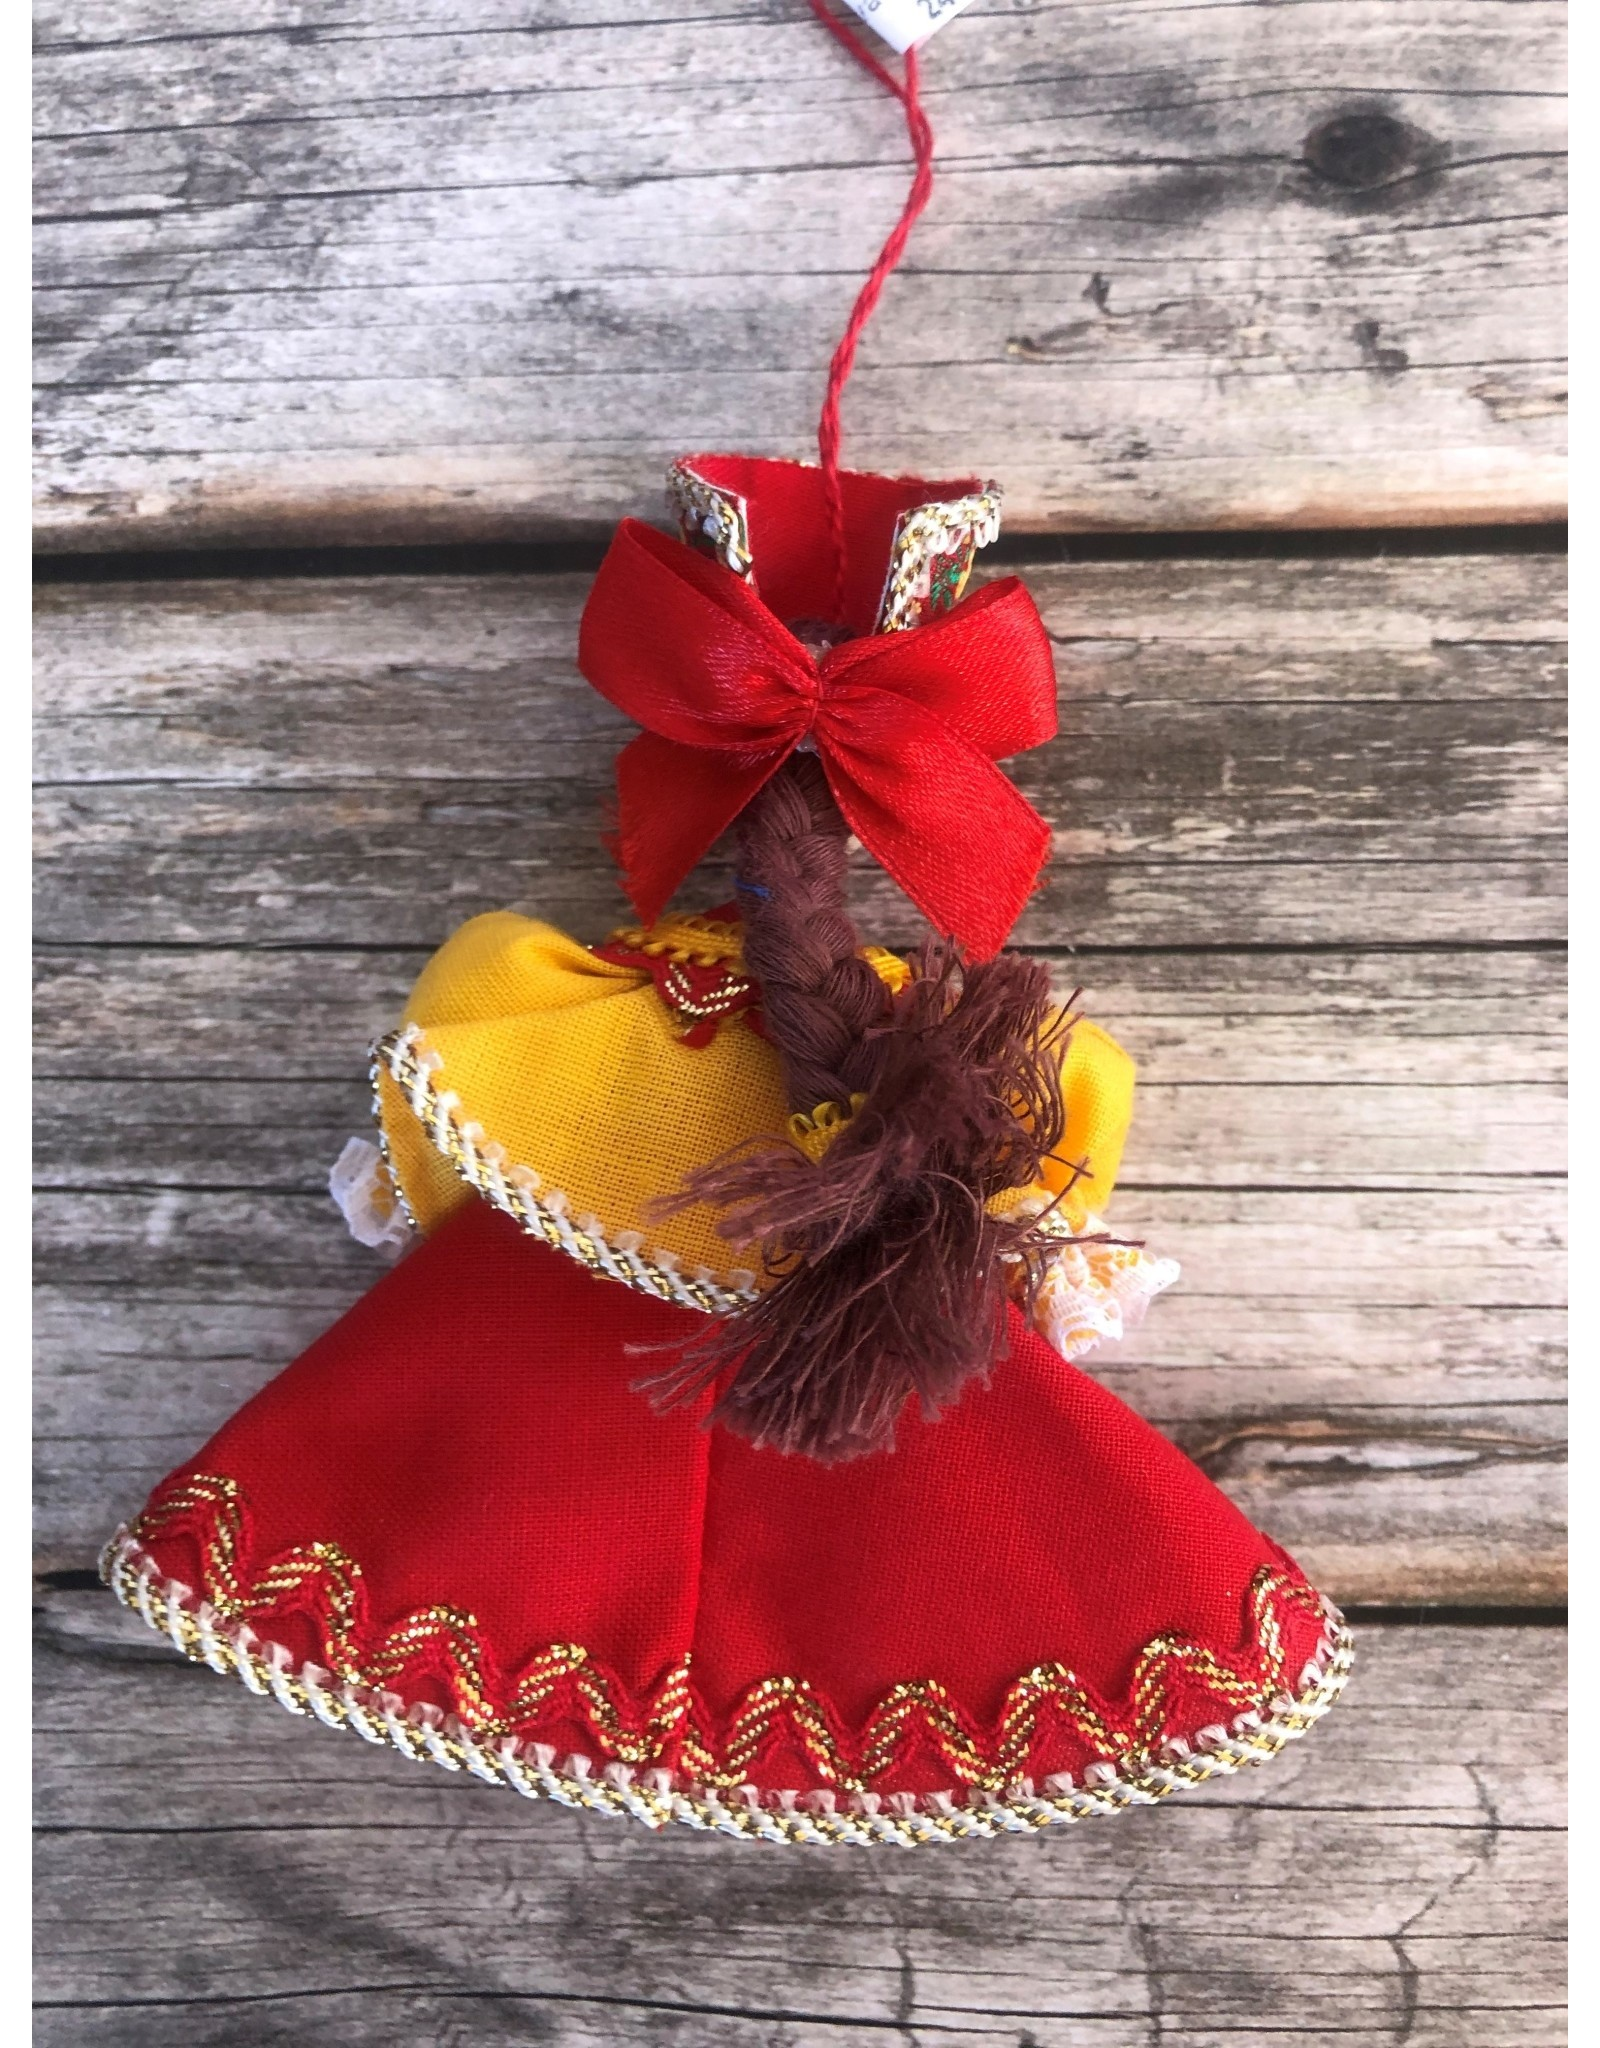 Folk Costume Ornament in Red and Yellow